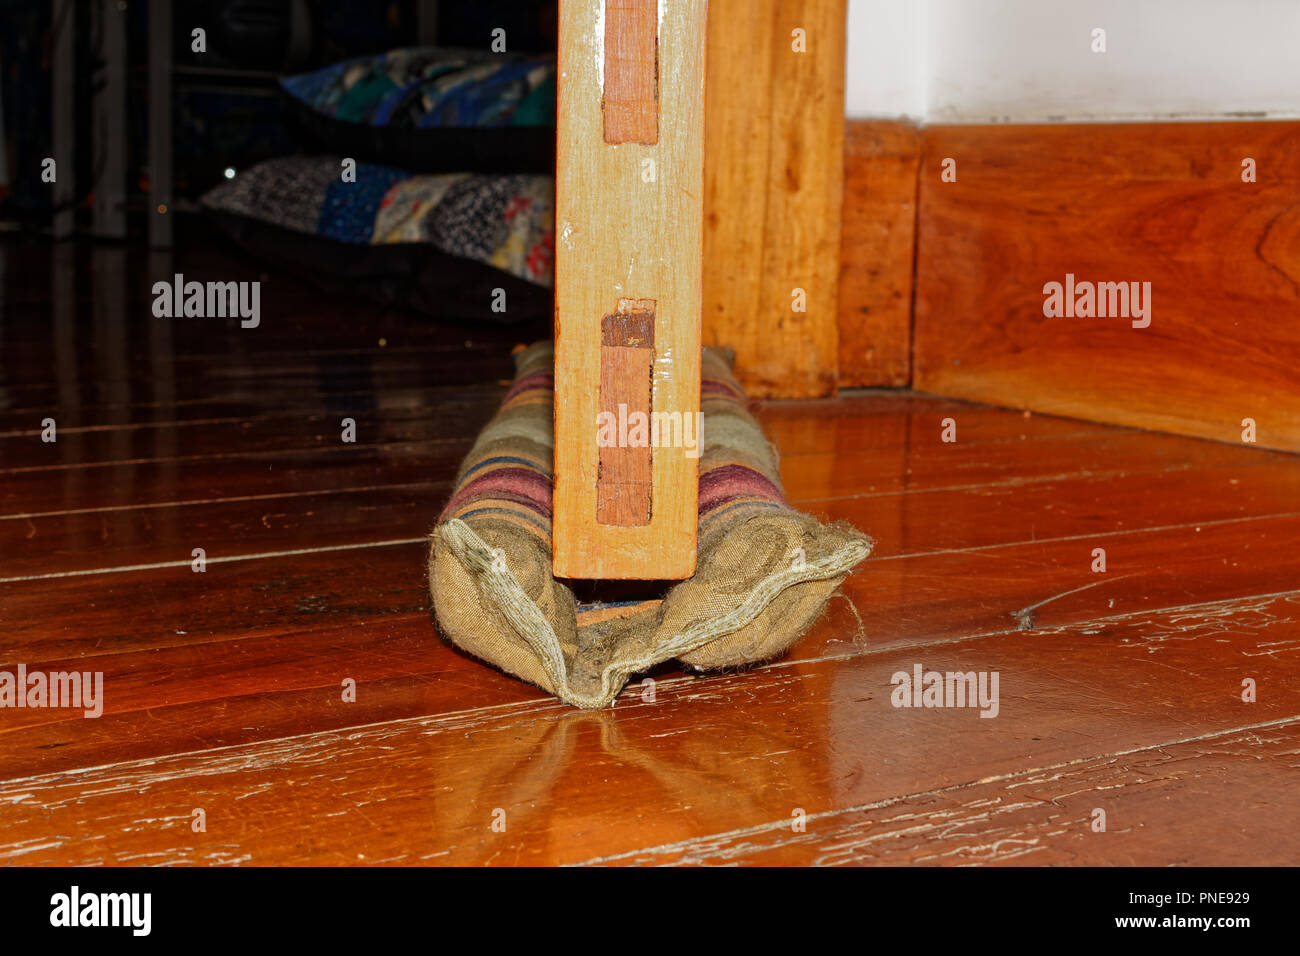 You don't have to move your draught excluder with a double one, it slides with the door when it is opened and clsed. - Stock Image